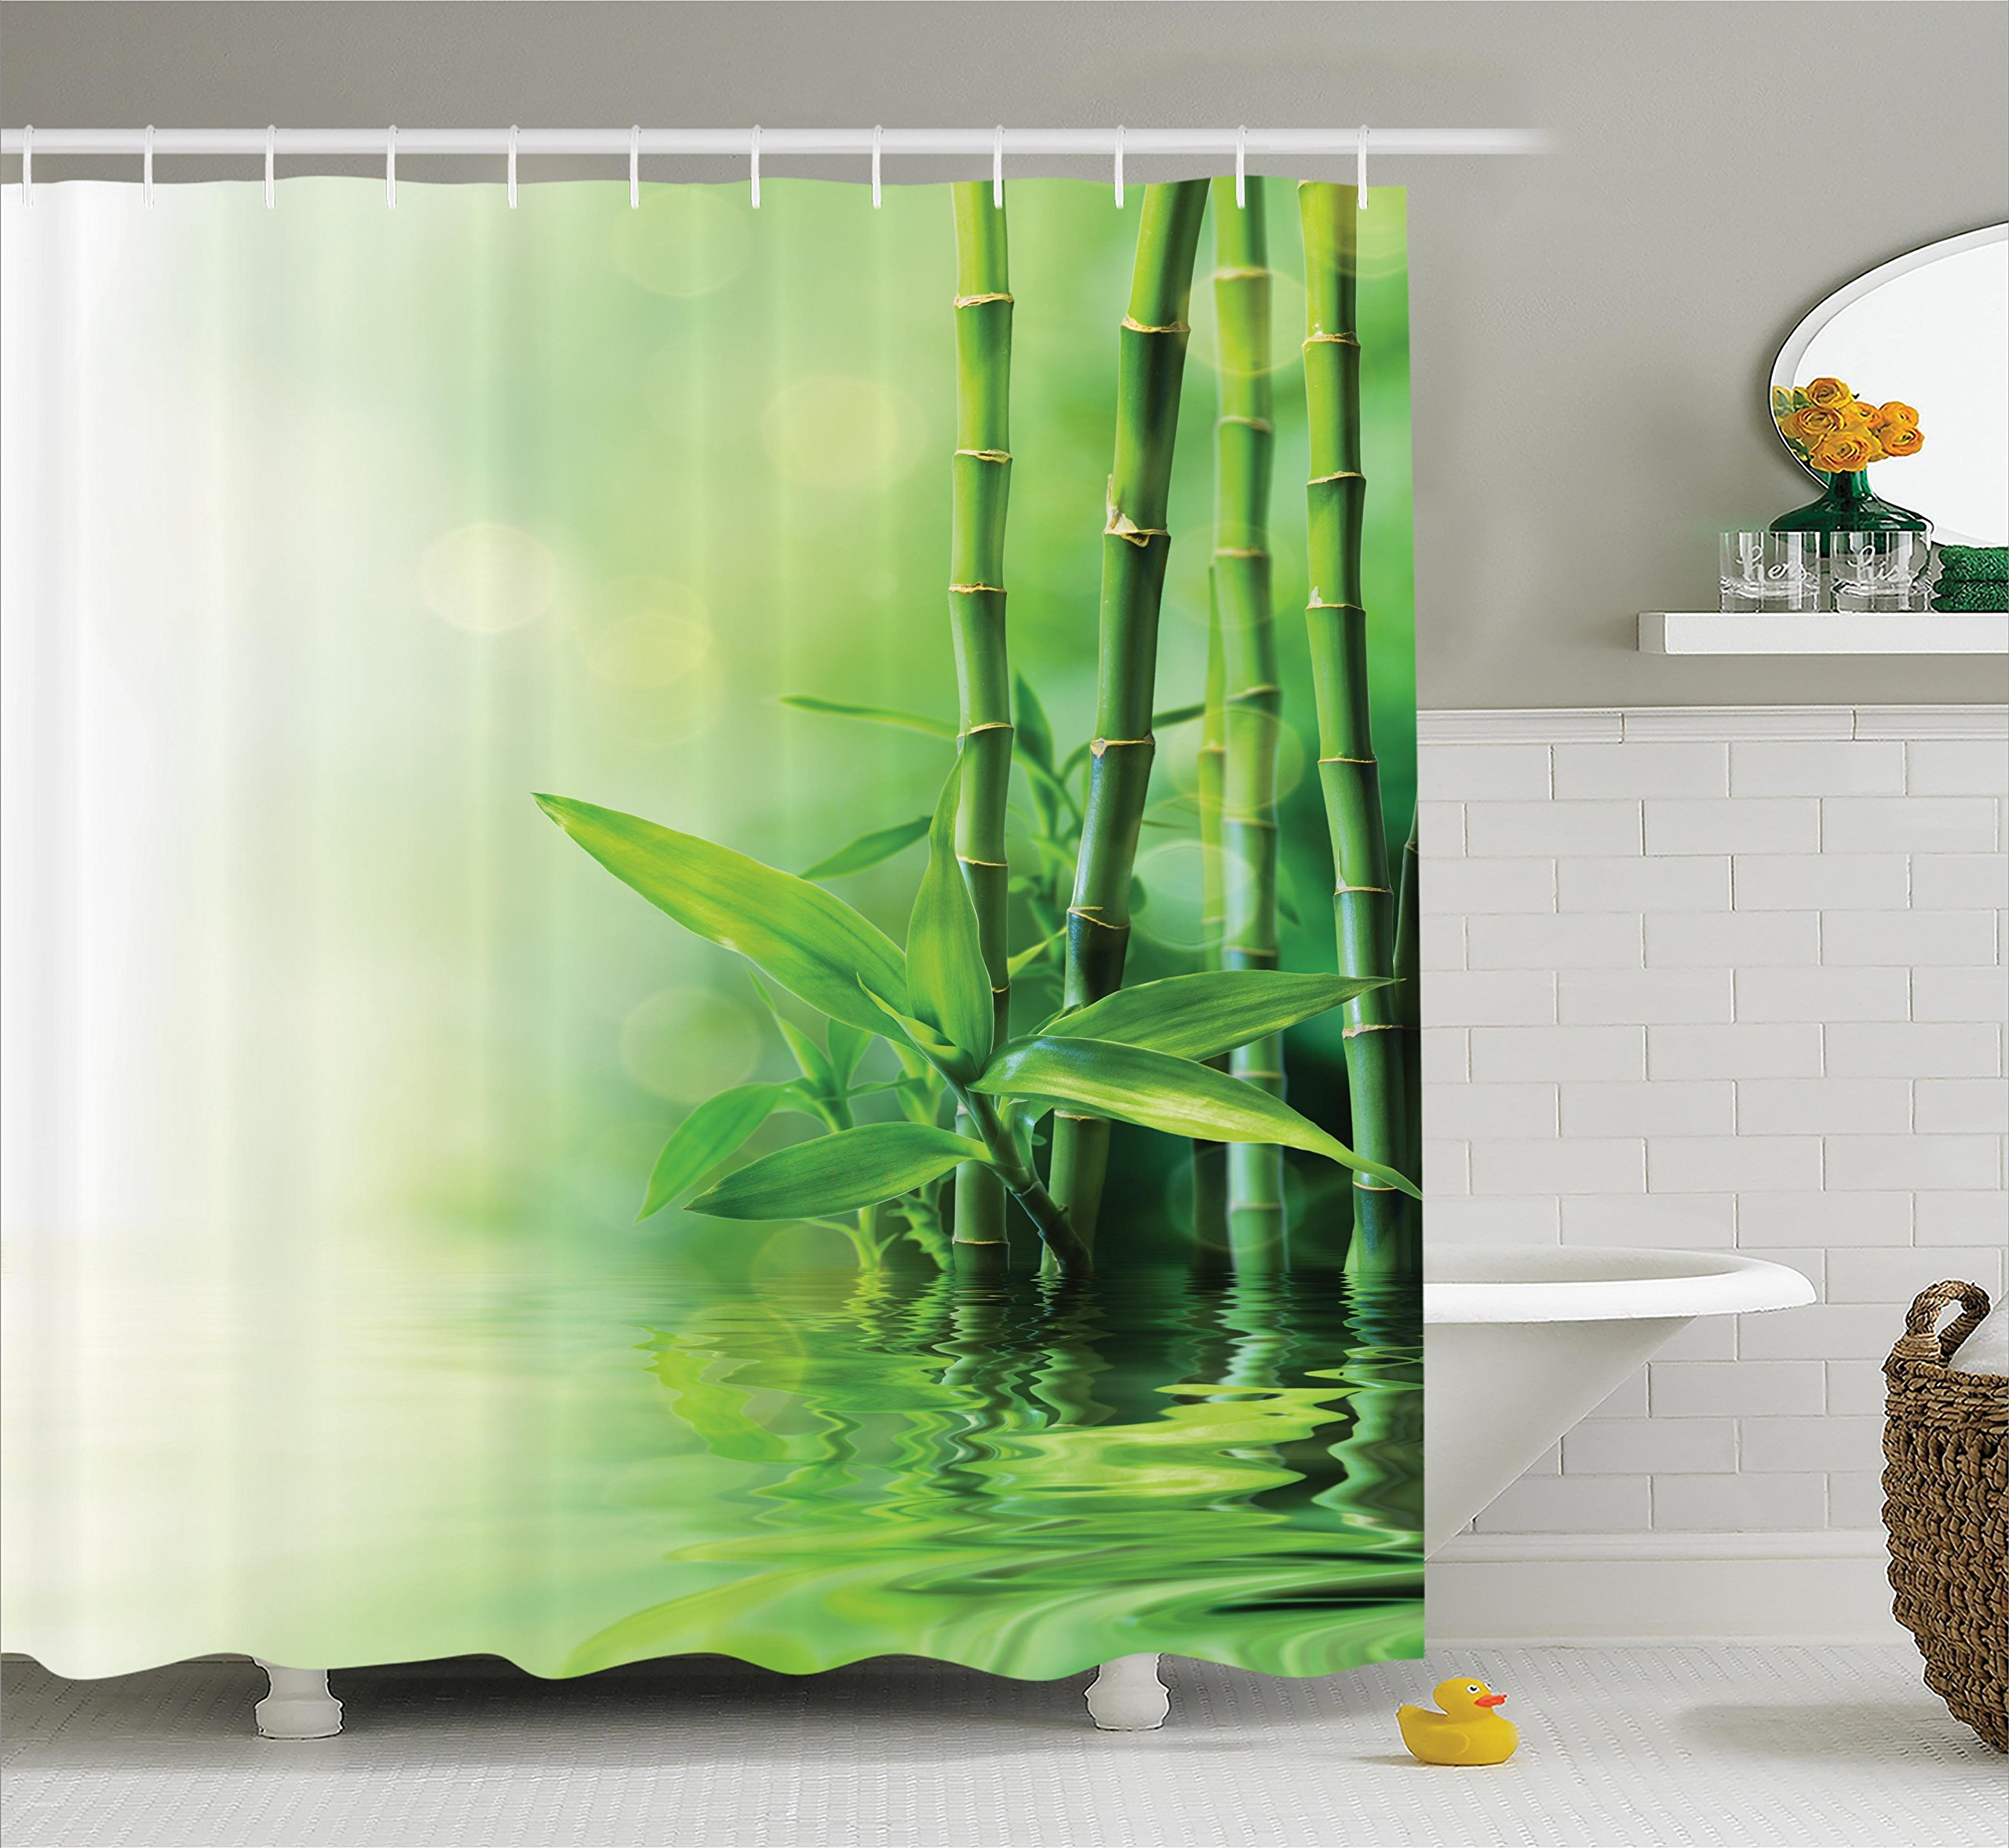 Ambesonne Asian Decor Shower Curtain Set, Bamboo Stalks Reflection On Water Blurs Freshness Japanese Decorative Zen Spa, Bathroom Accessories, 69W X 70L inches